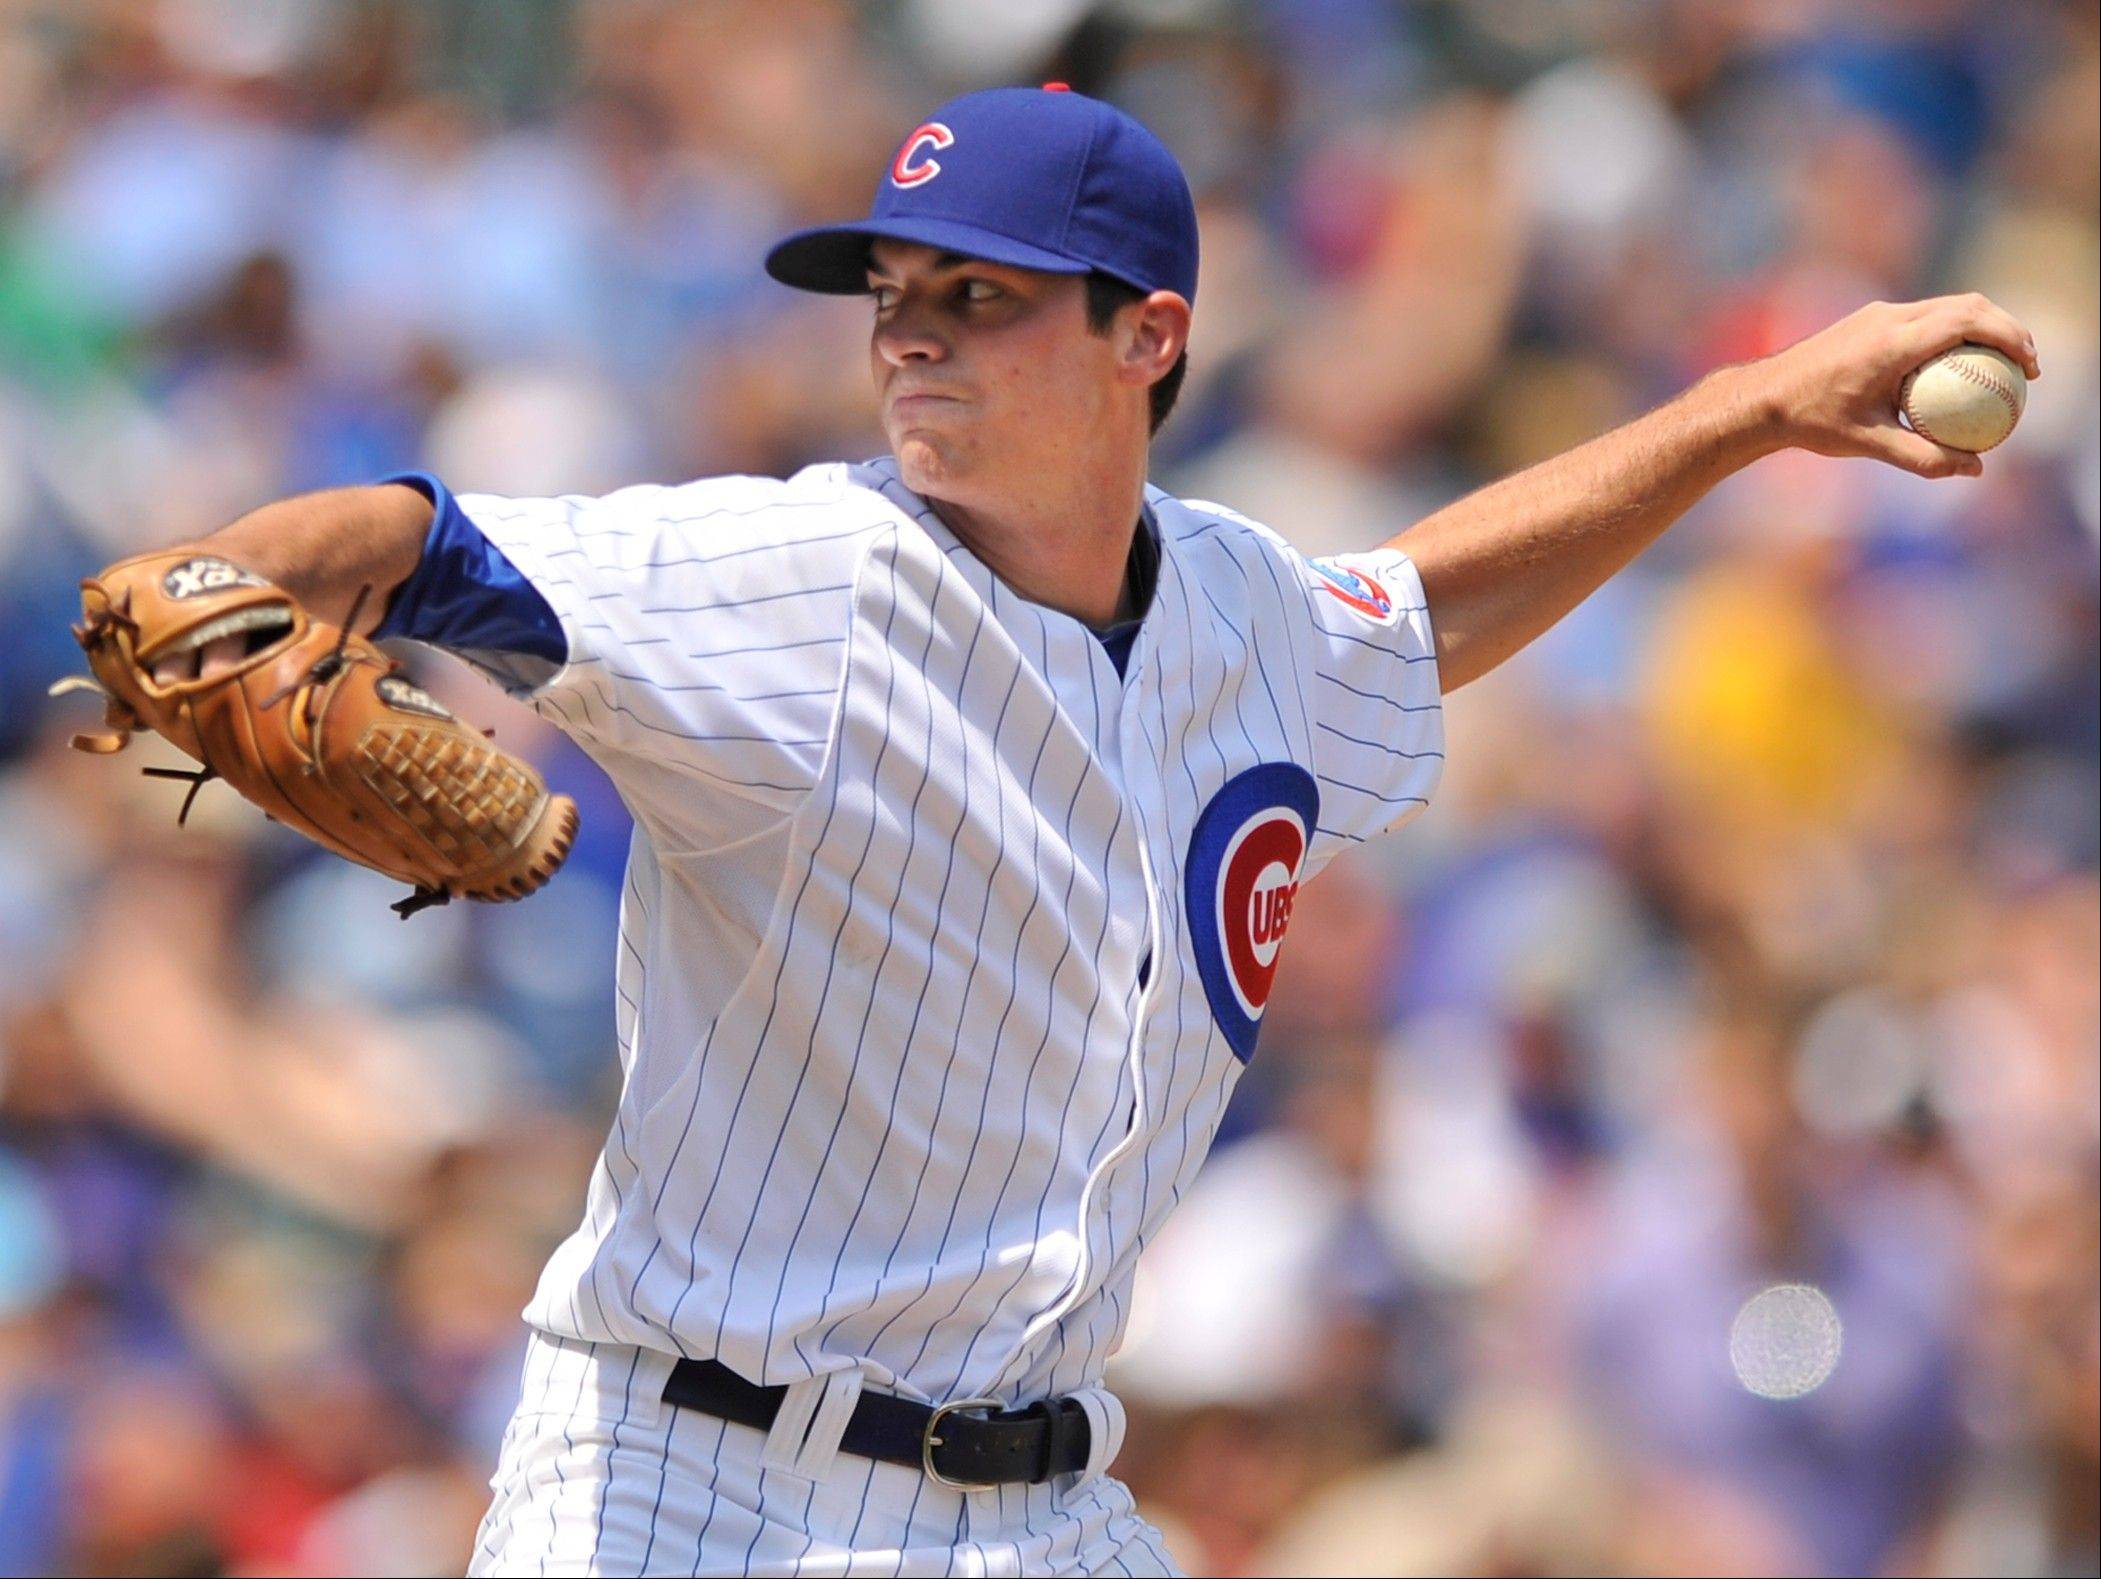 Chicago Cubs starter Brooks Raley delivers a pitch to the Colorado Rockies in the first inning during a baseball game in Chicago, Saturday.